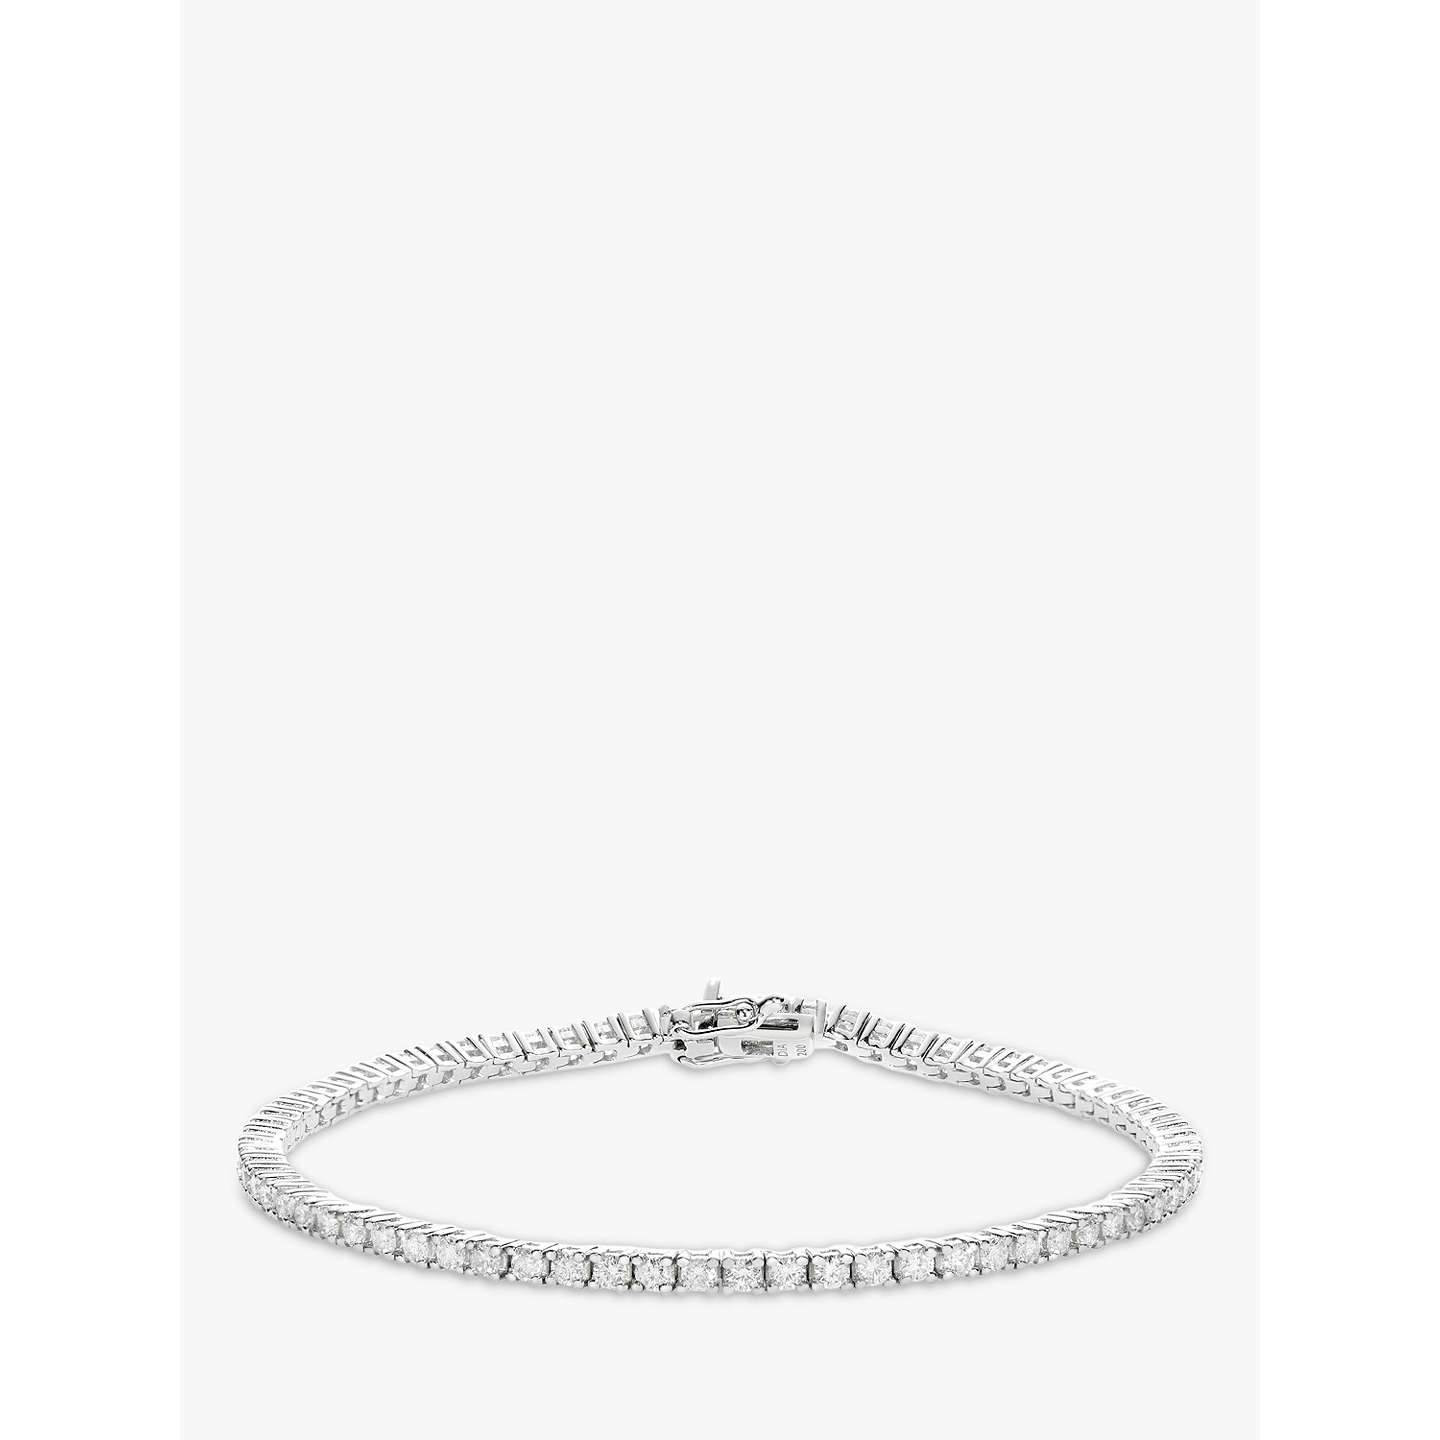 BuyMogul 18ct White Gold Diamond Tennis Bracelet, 2ct Online at johnlewis.com